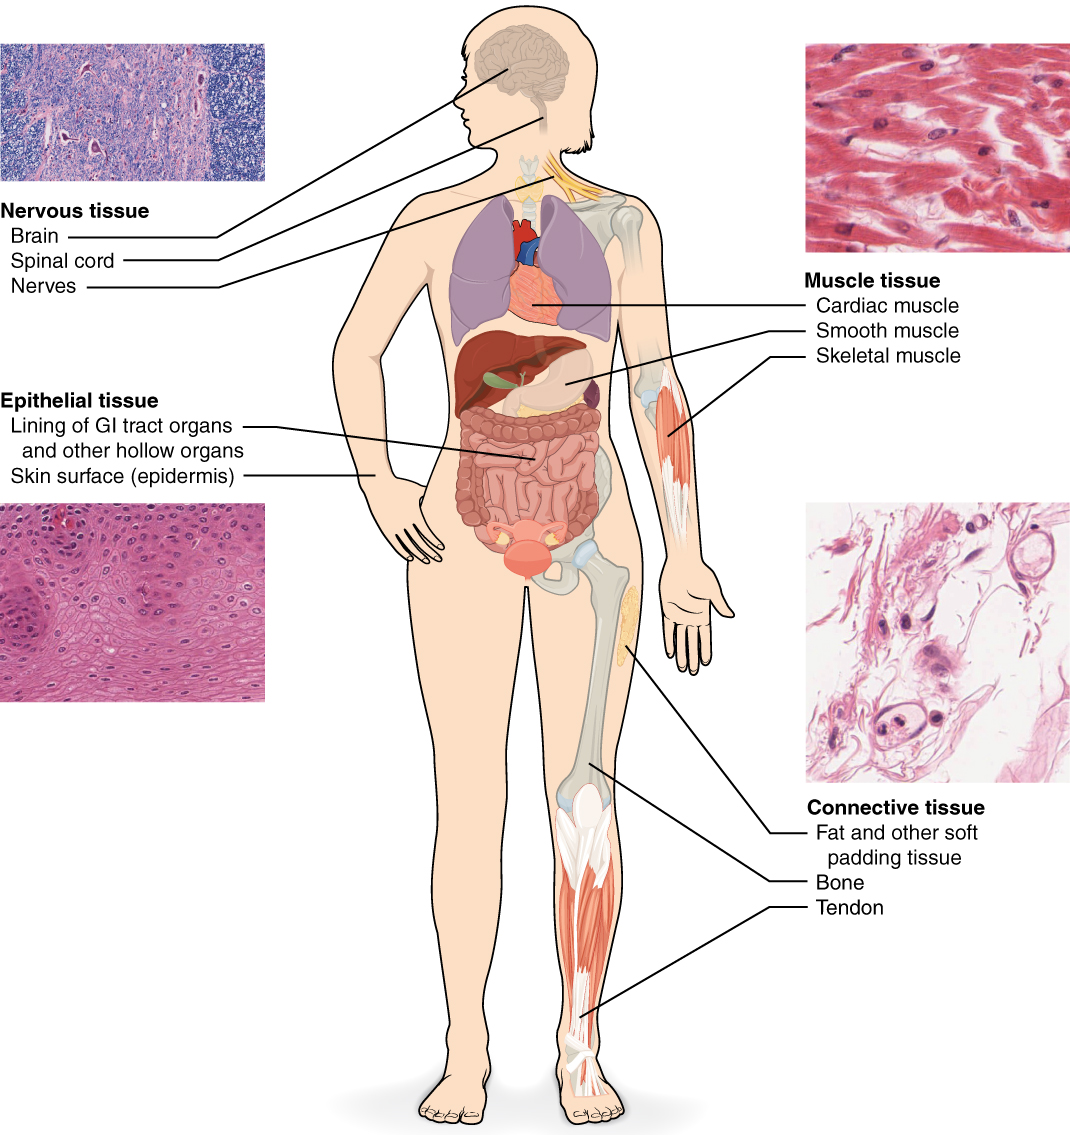 A Basic Overview Of The 4 Types Of Human Tissue